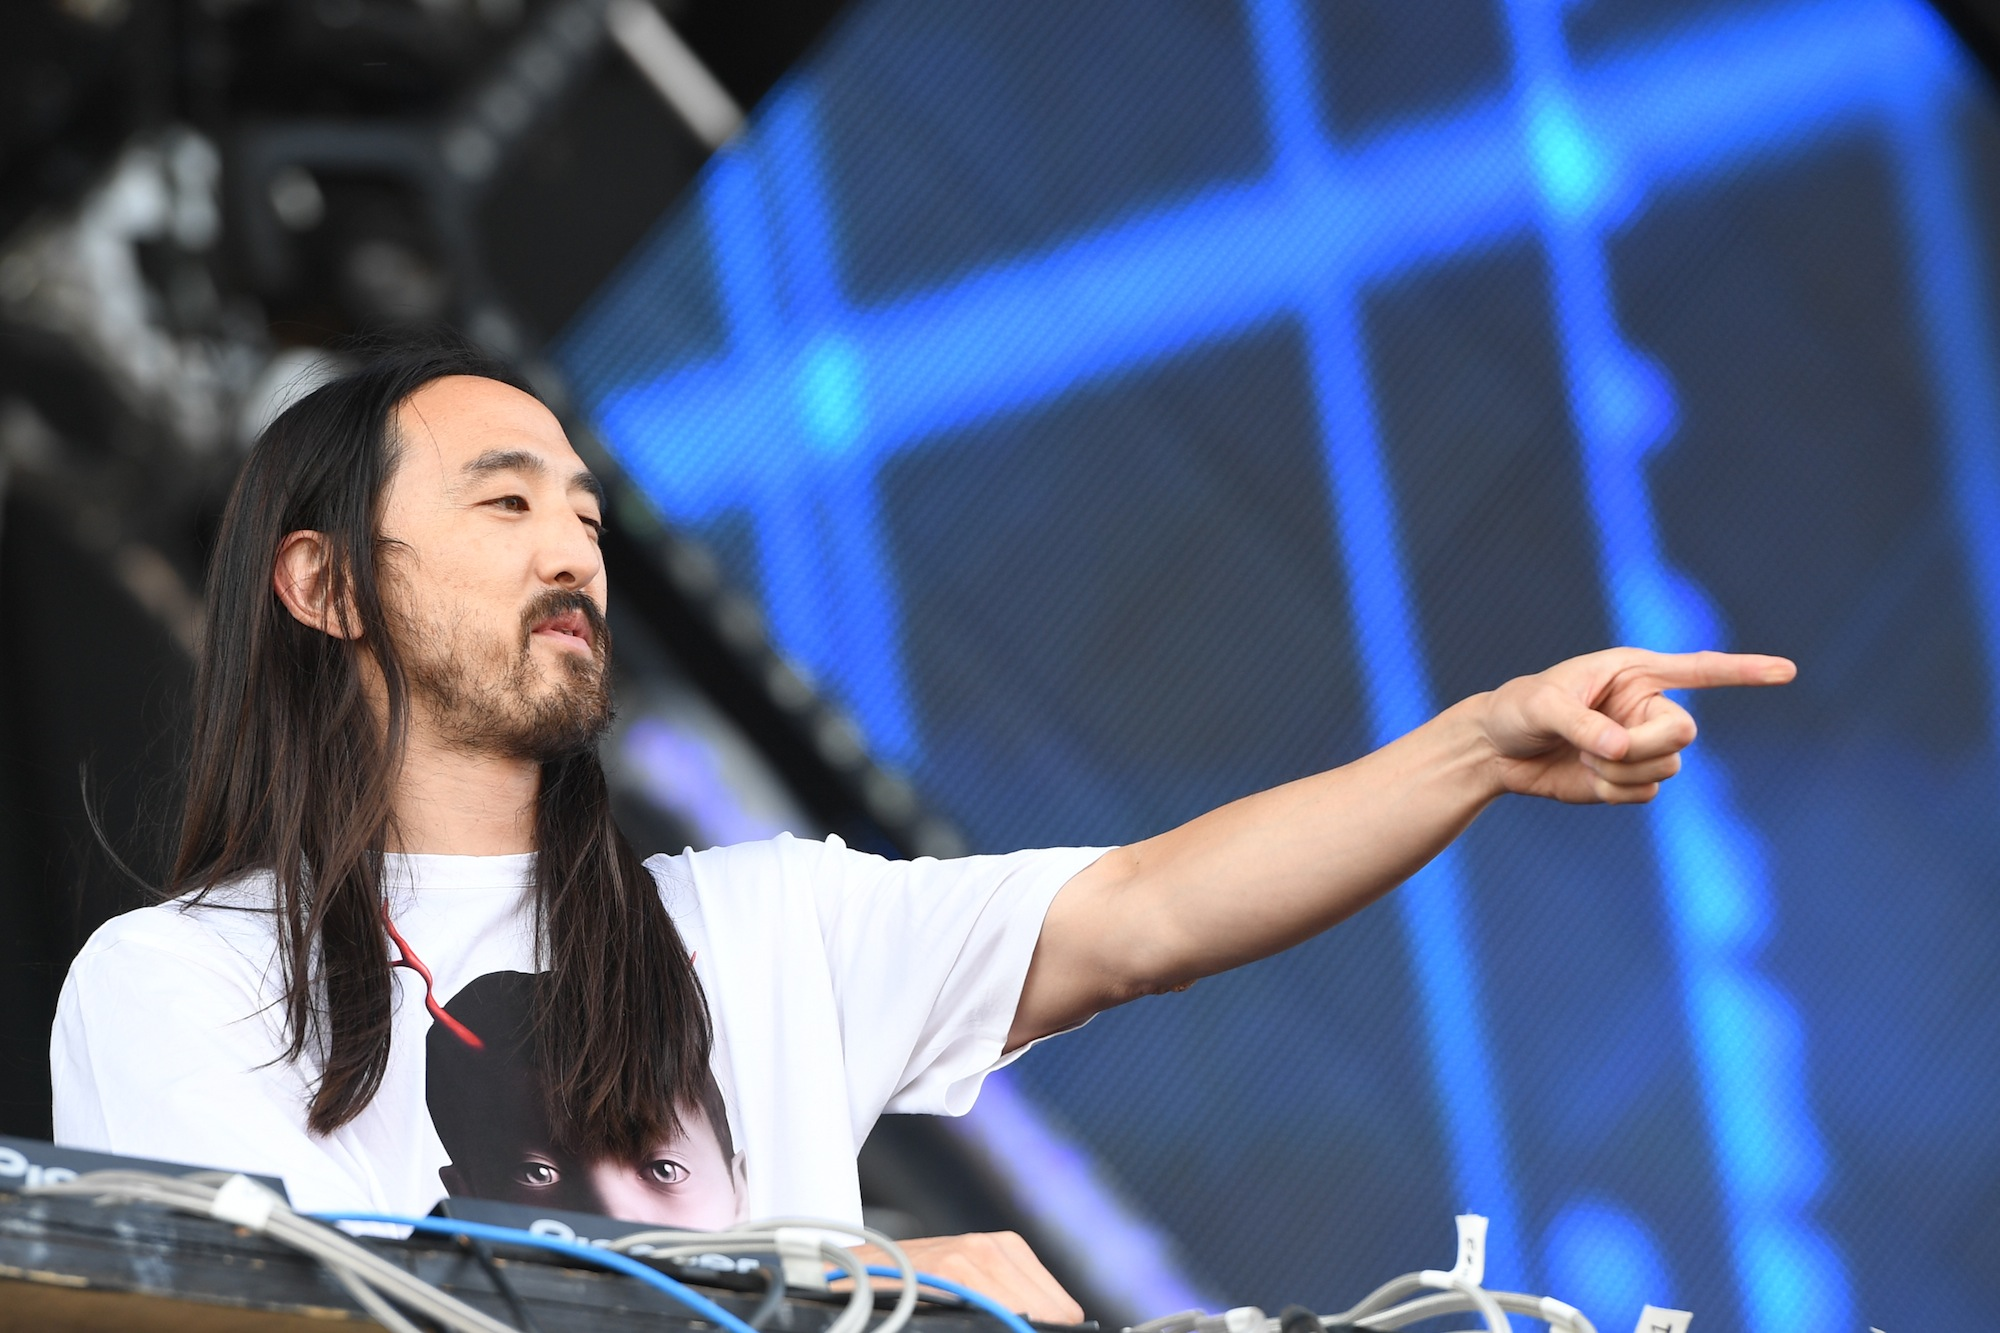 TORONTO, ON - JULY 30:  Steve Aoki performs at Veld Music Festival at Downsview Park on July 30, 2016 in Toronto, Canada.  (P